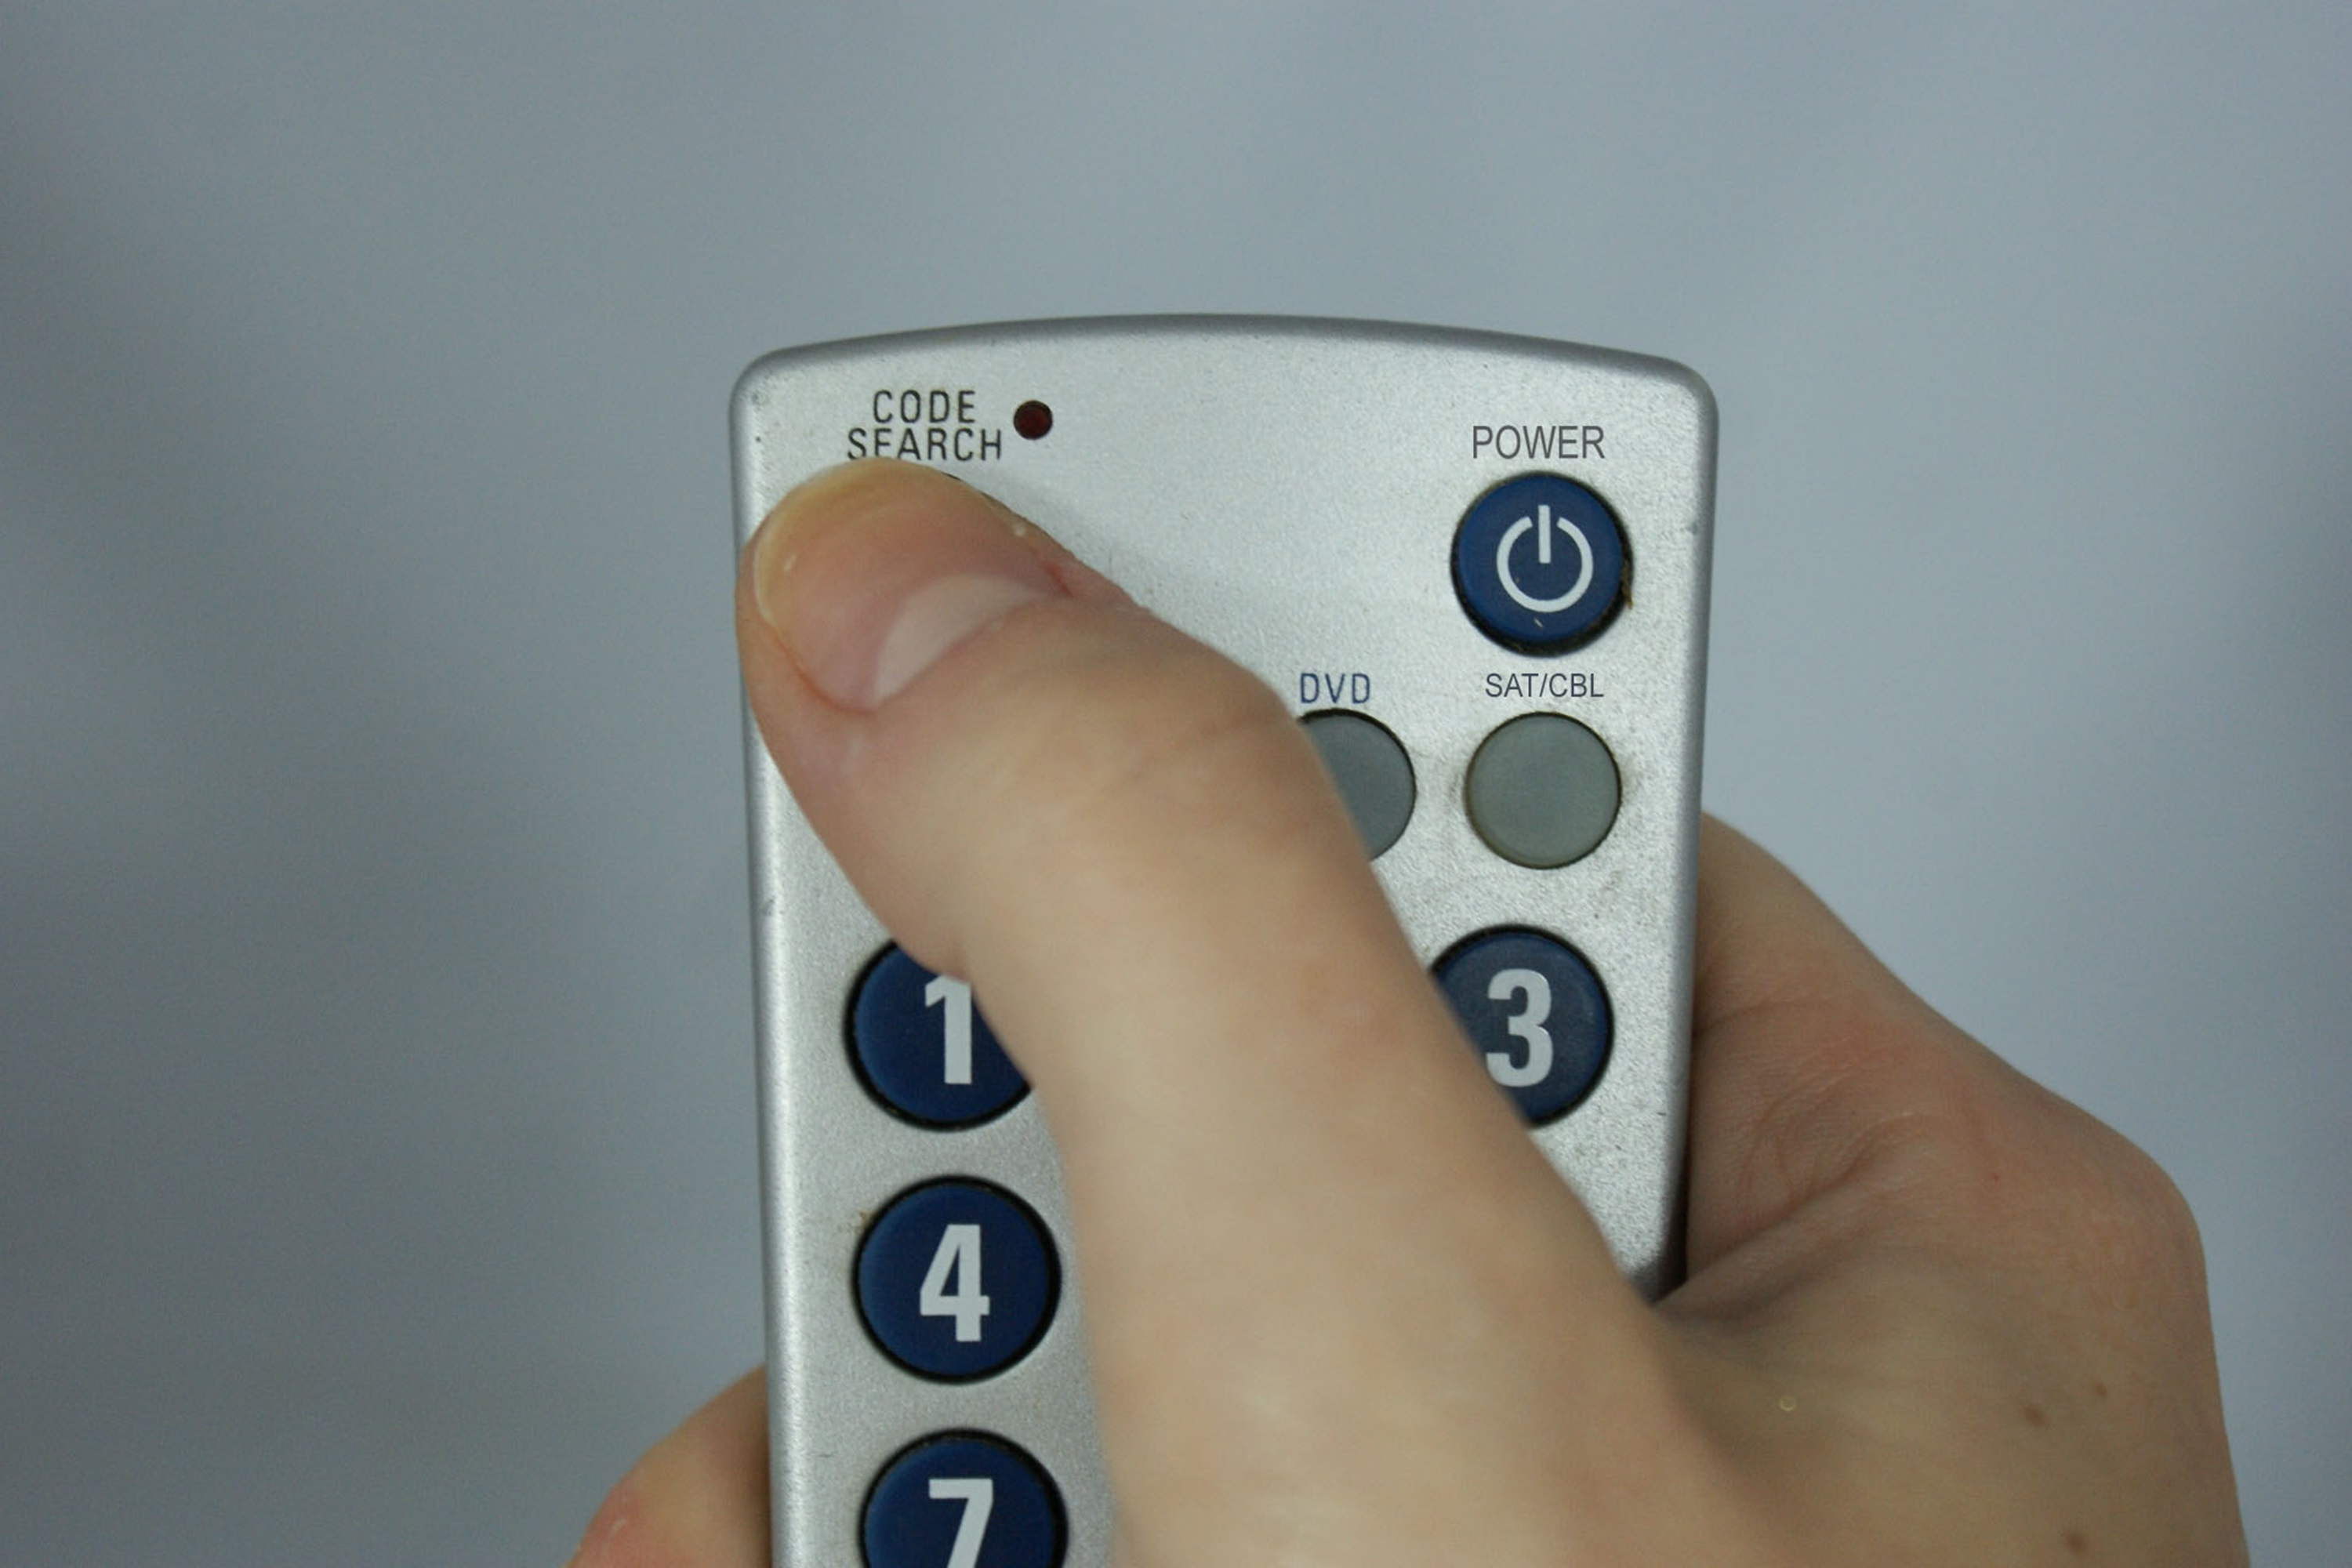 How to Program a Dish Network Remote to Control Your TV, VCR